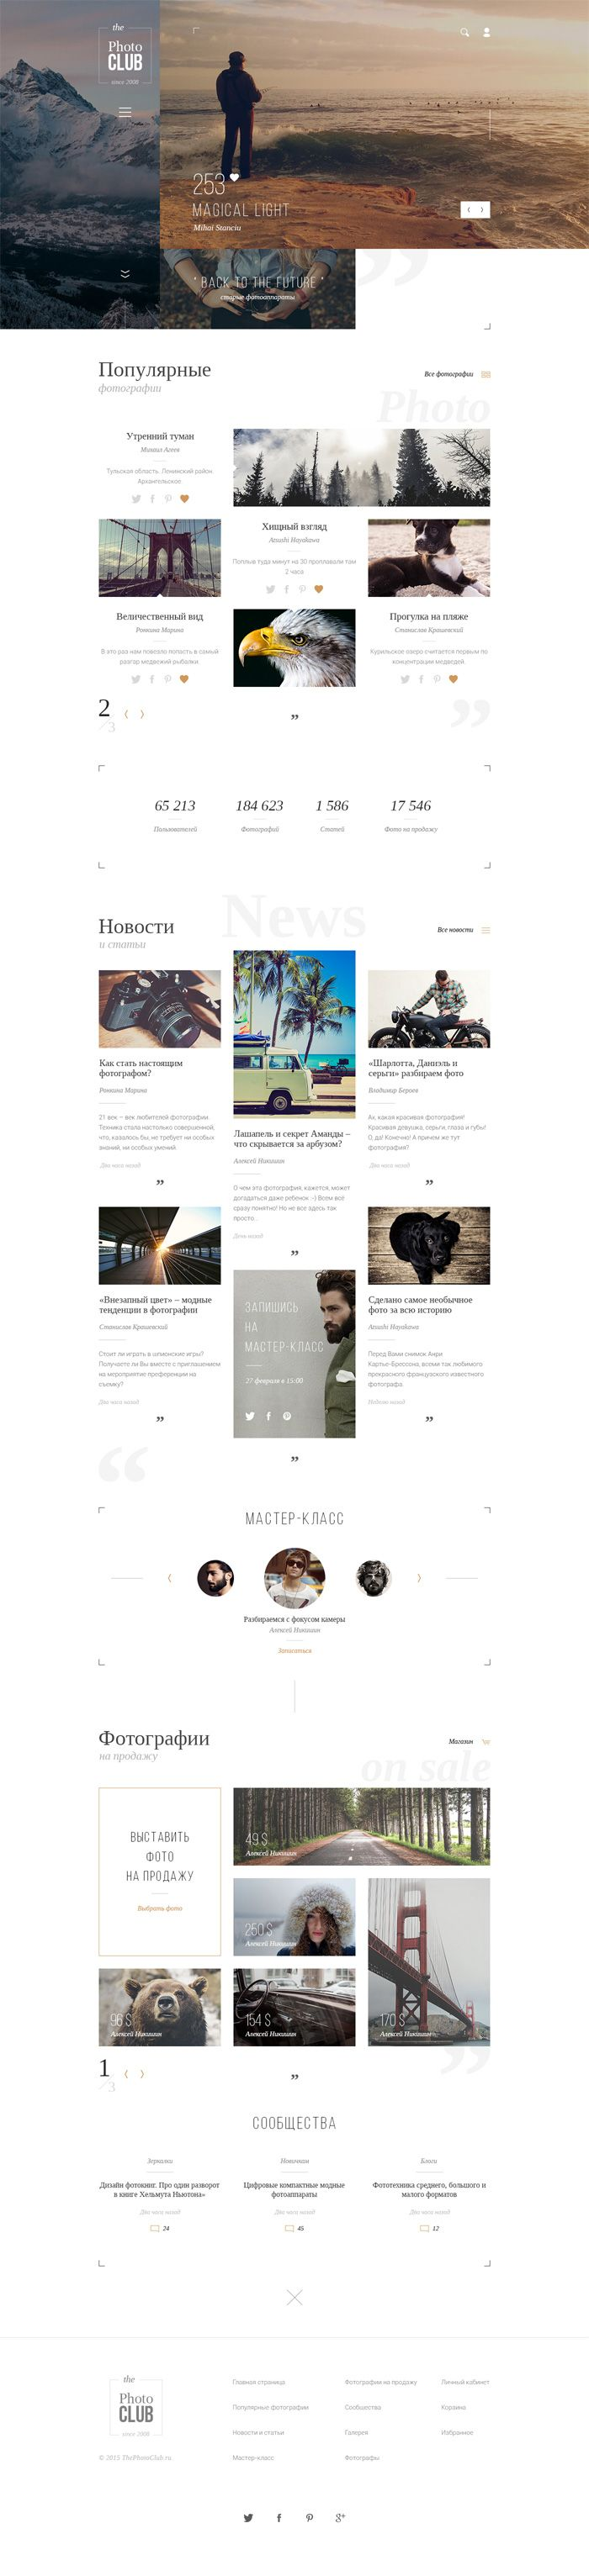 Photo Club by Anton Skvortsov #web #webdesign #design #layout #grid #blog